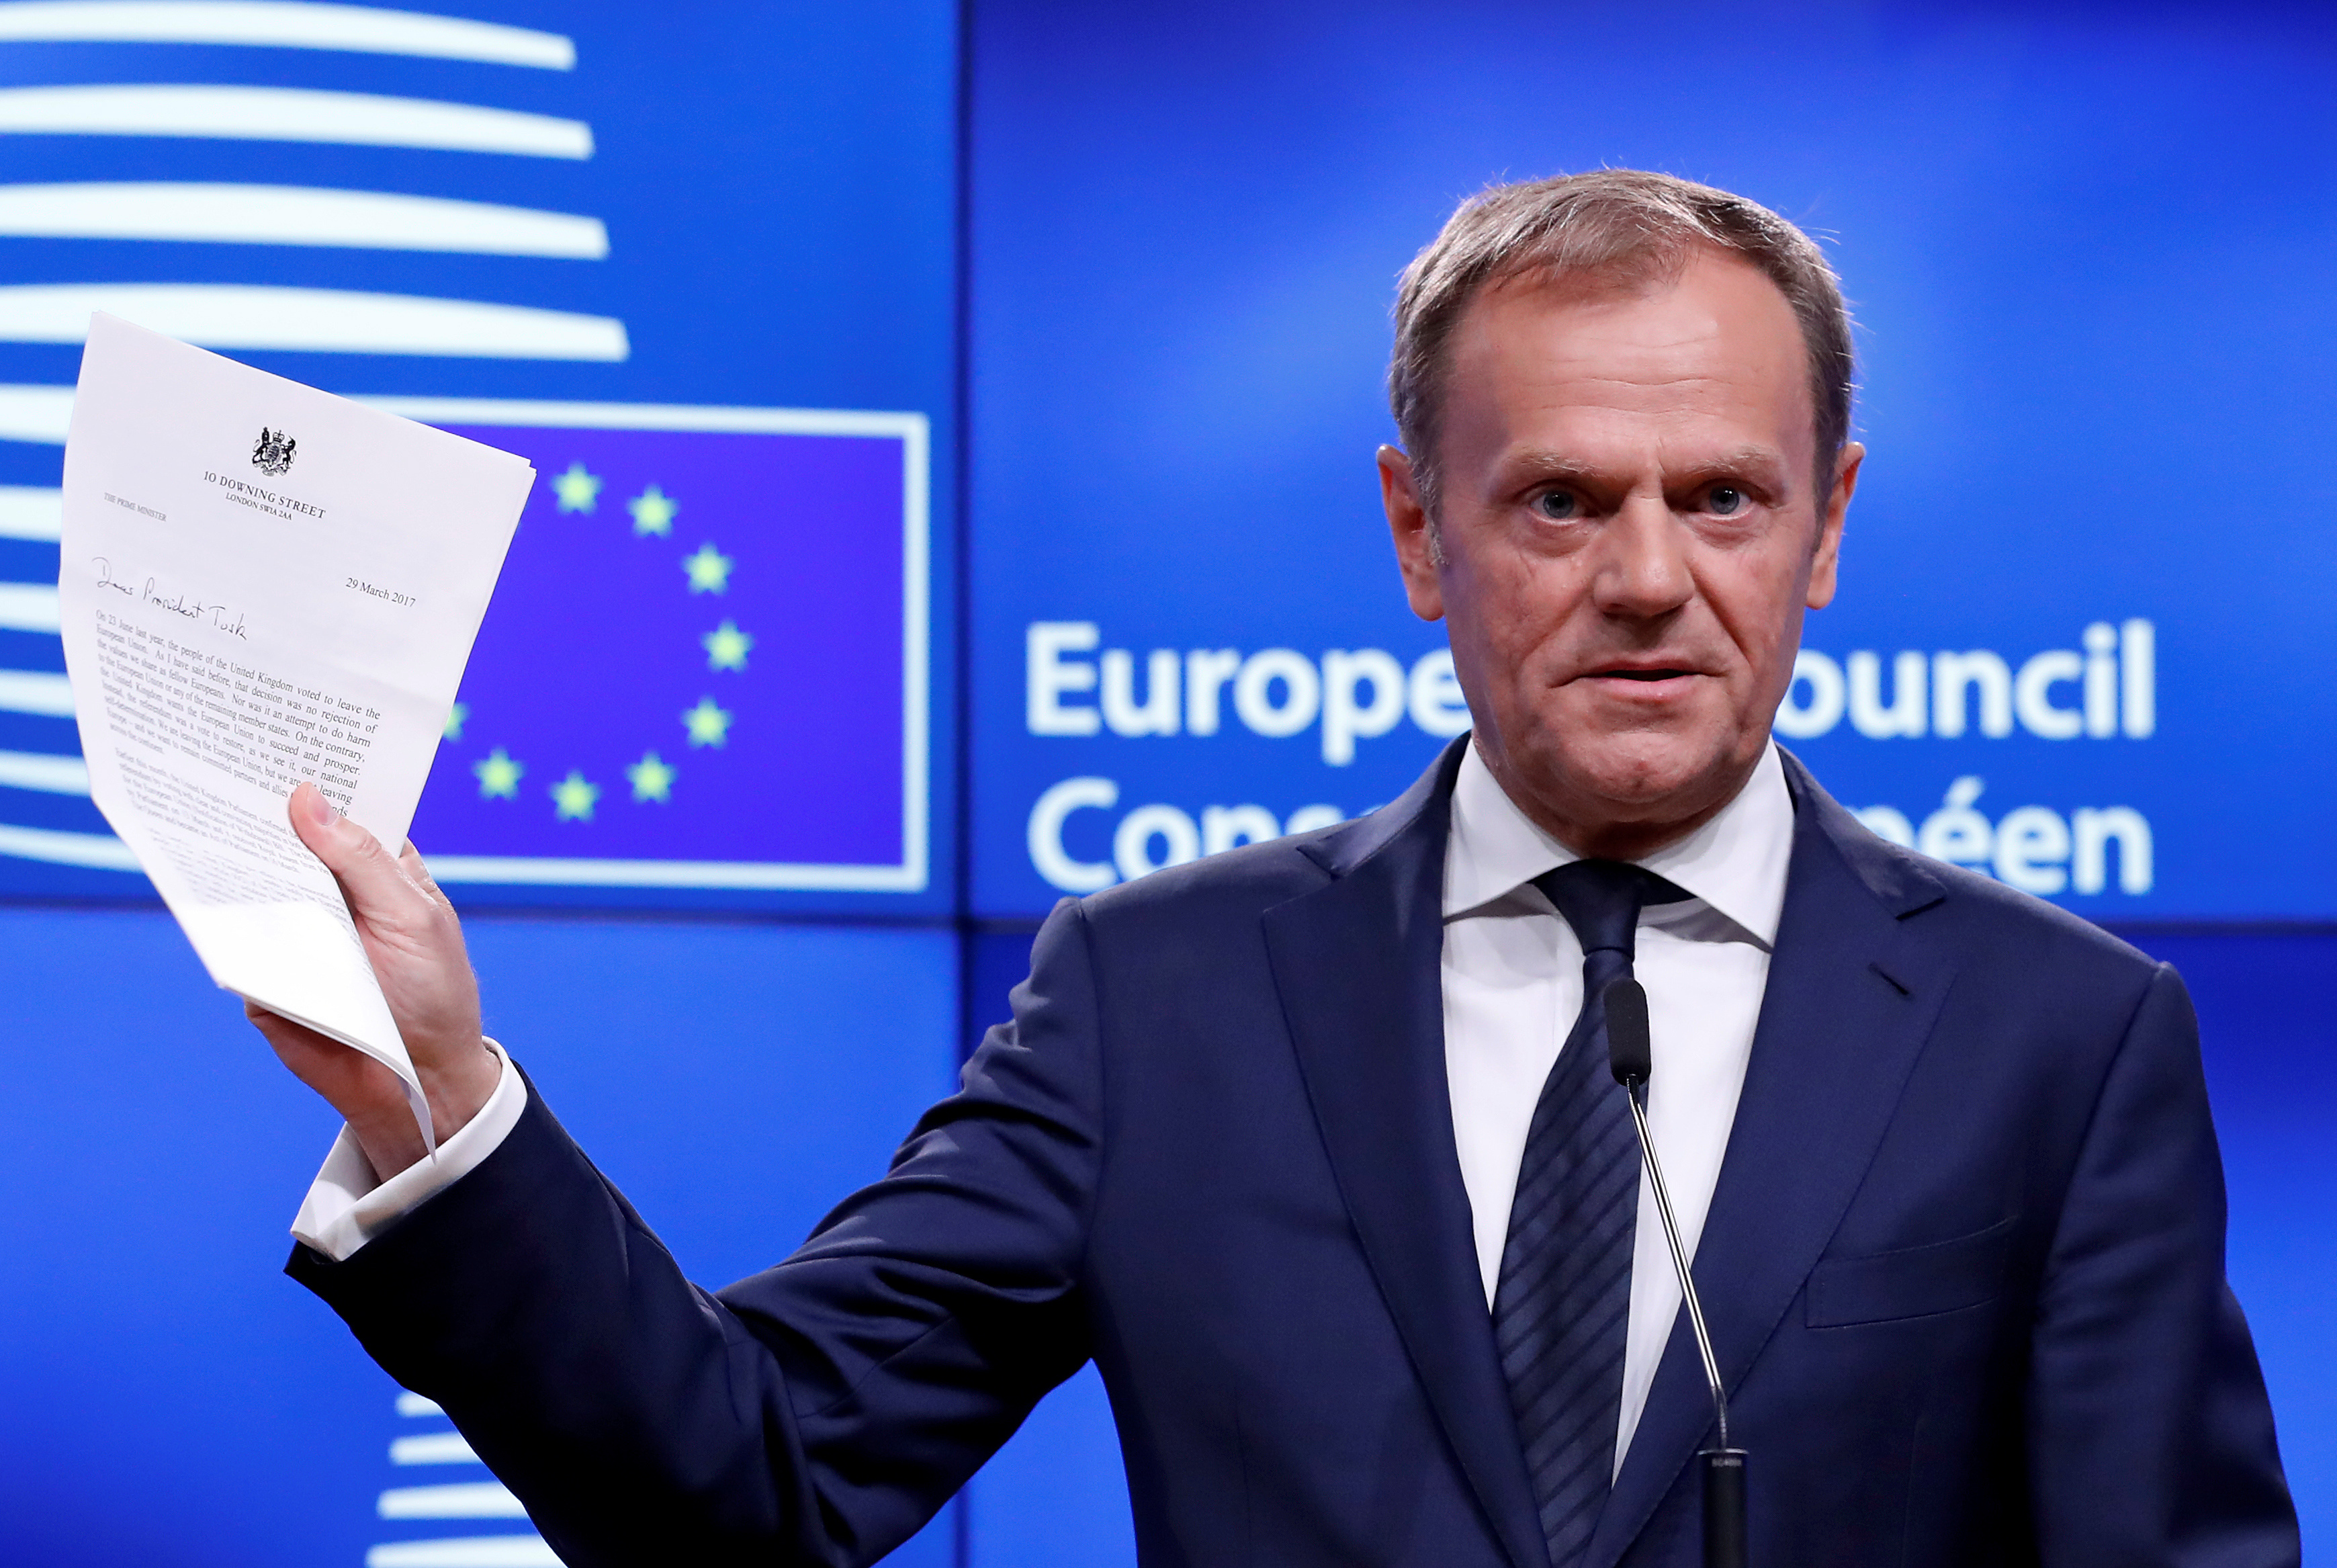 BRUSSELS 2017-03-29 European Council President Donald Tusk shows British Prime Minister Theresa May's Brexit letter in notice of the UK's intention to leave the bloc under Article 50 of the EU's Lisbon Treaty, at the end of a news conference in Brussels, Belgium March 29, 2017. REUTERS/Yves Herman TPX IMAGES OF THE DAY Photo: / REUTERS / TT / kod 72000